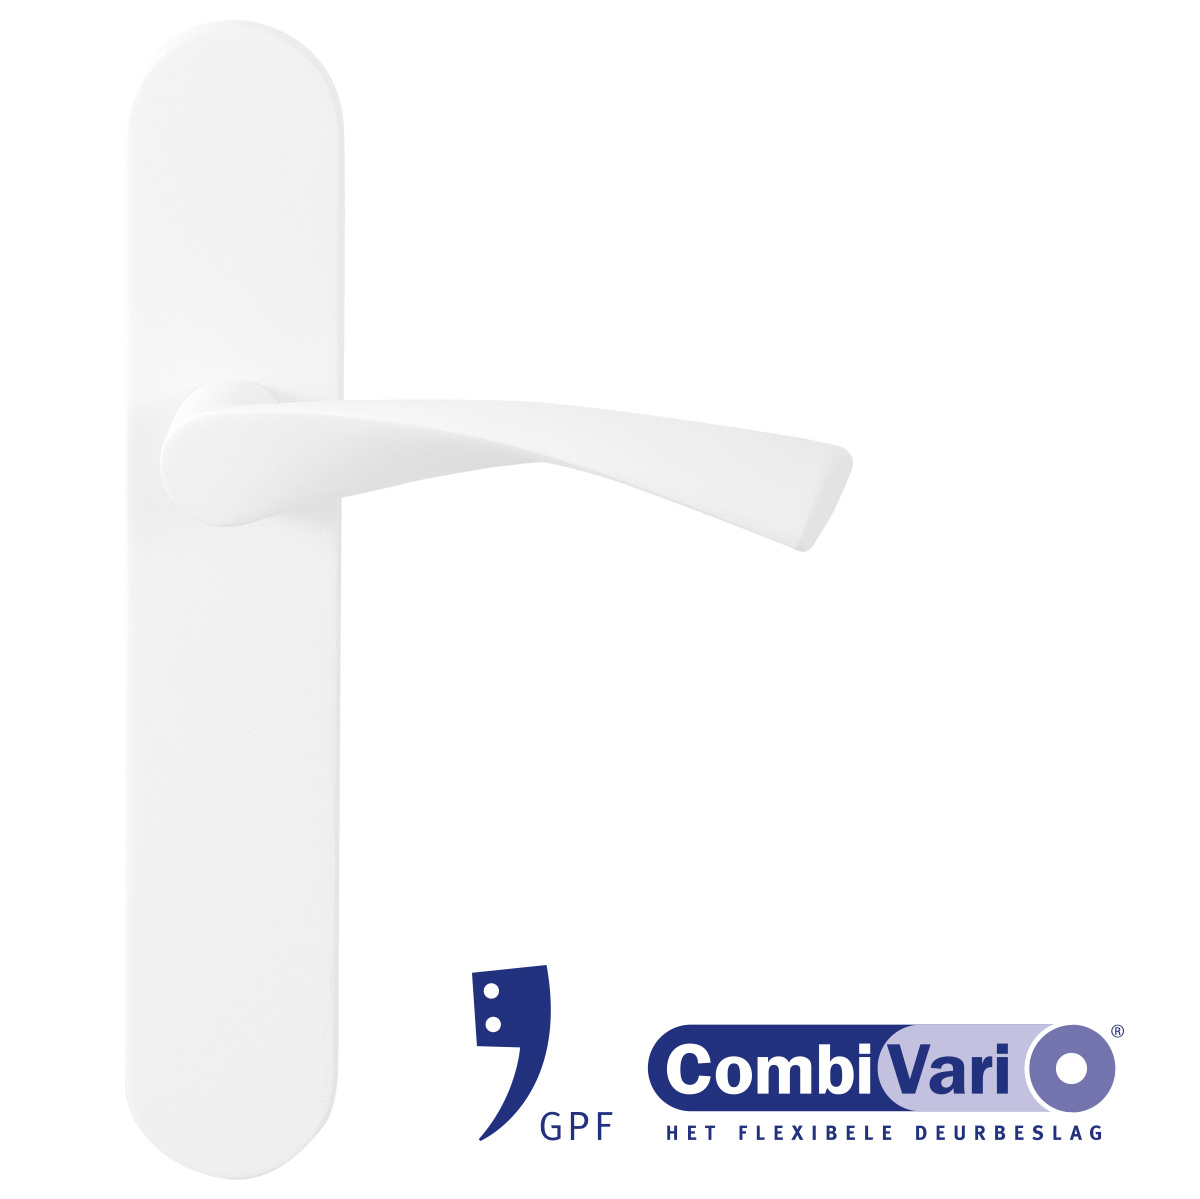 GPF door handle on plate in white